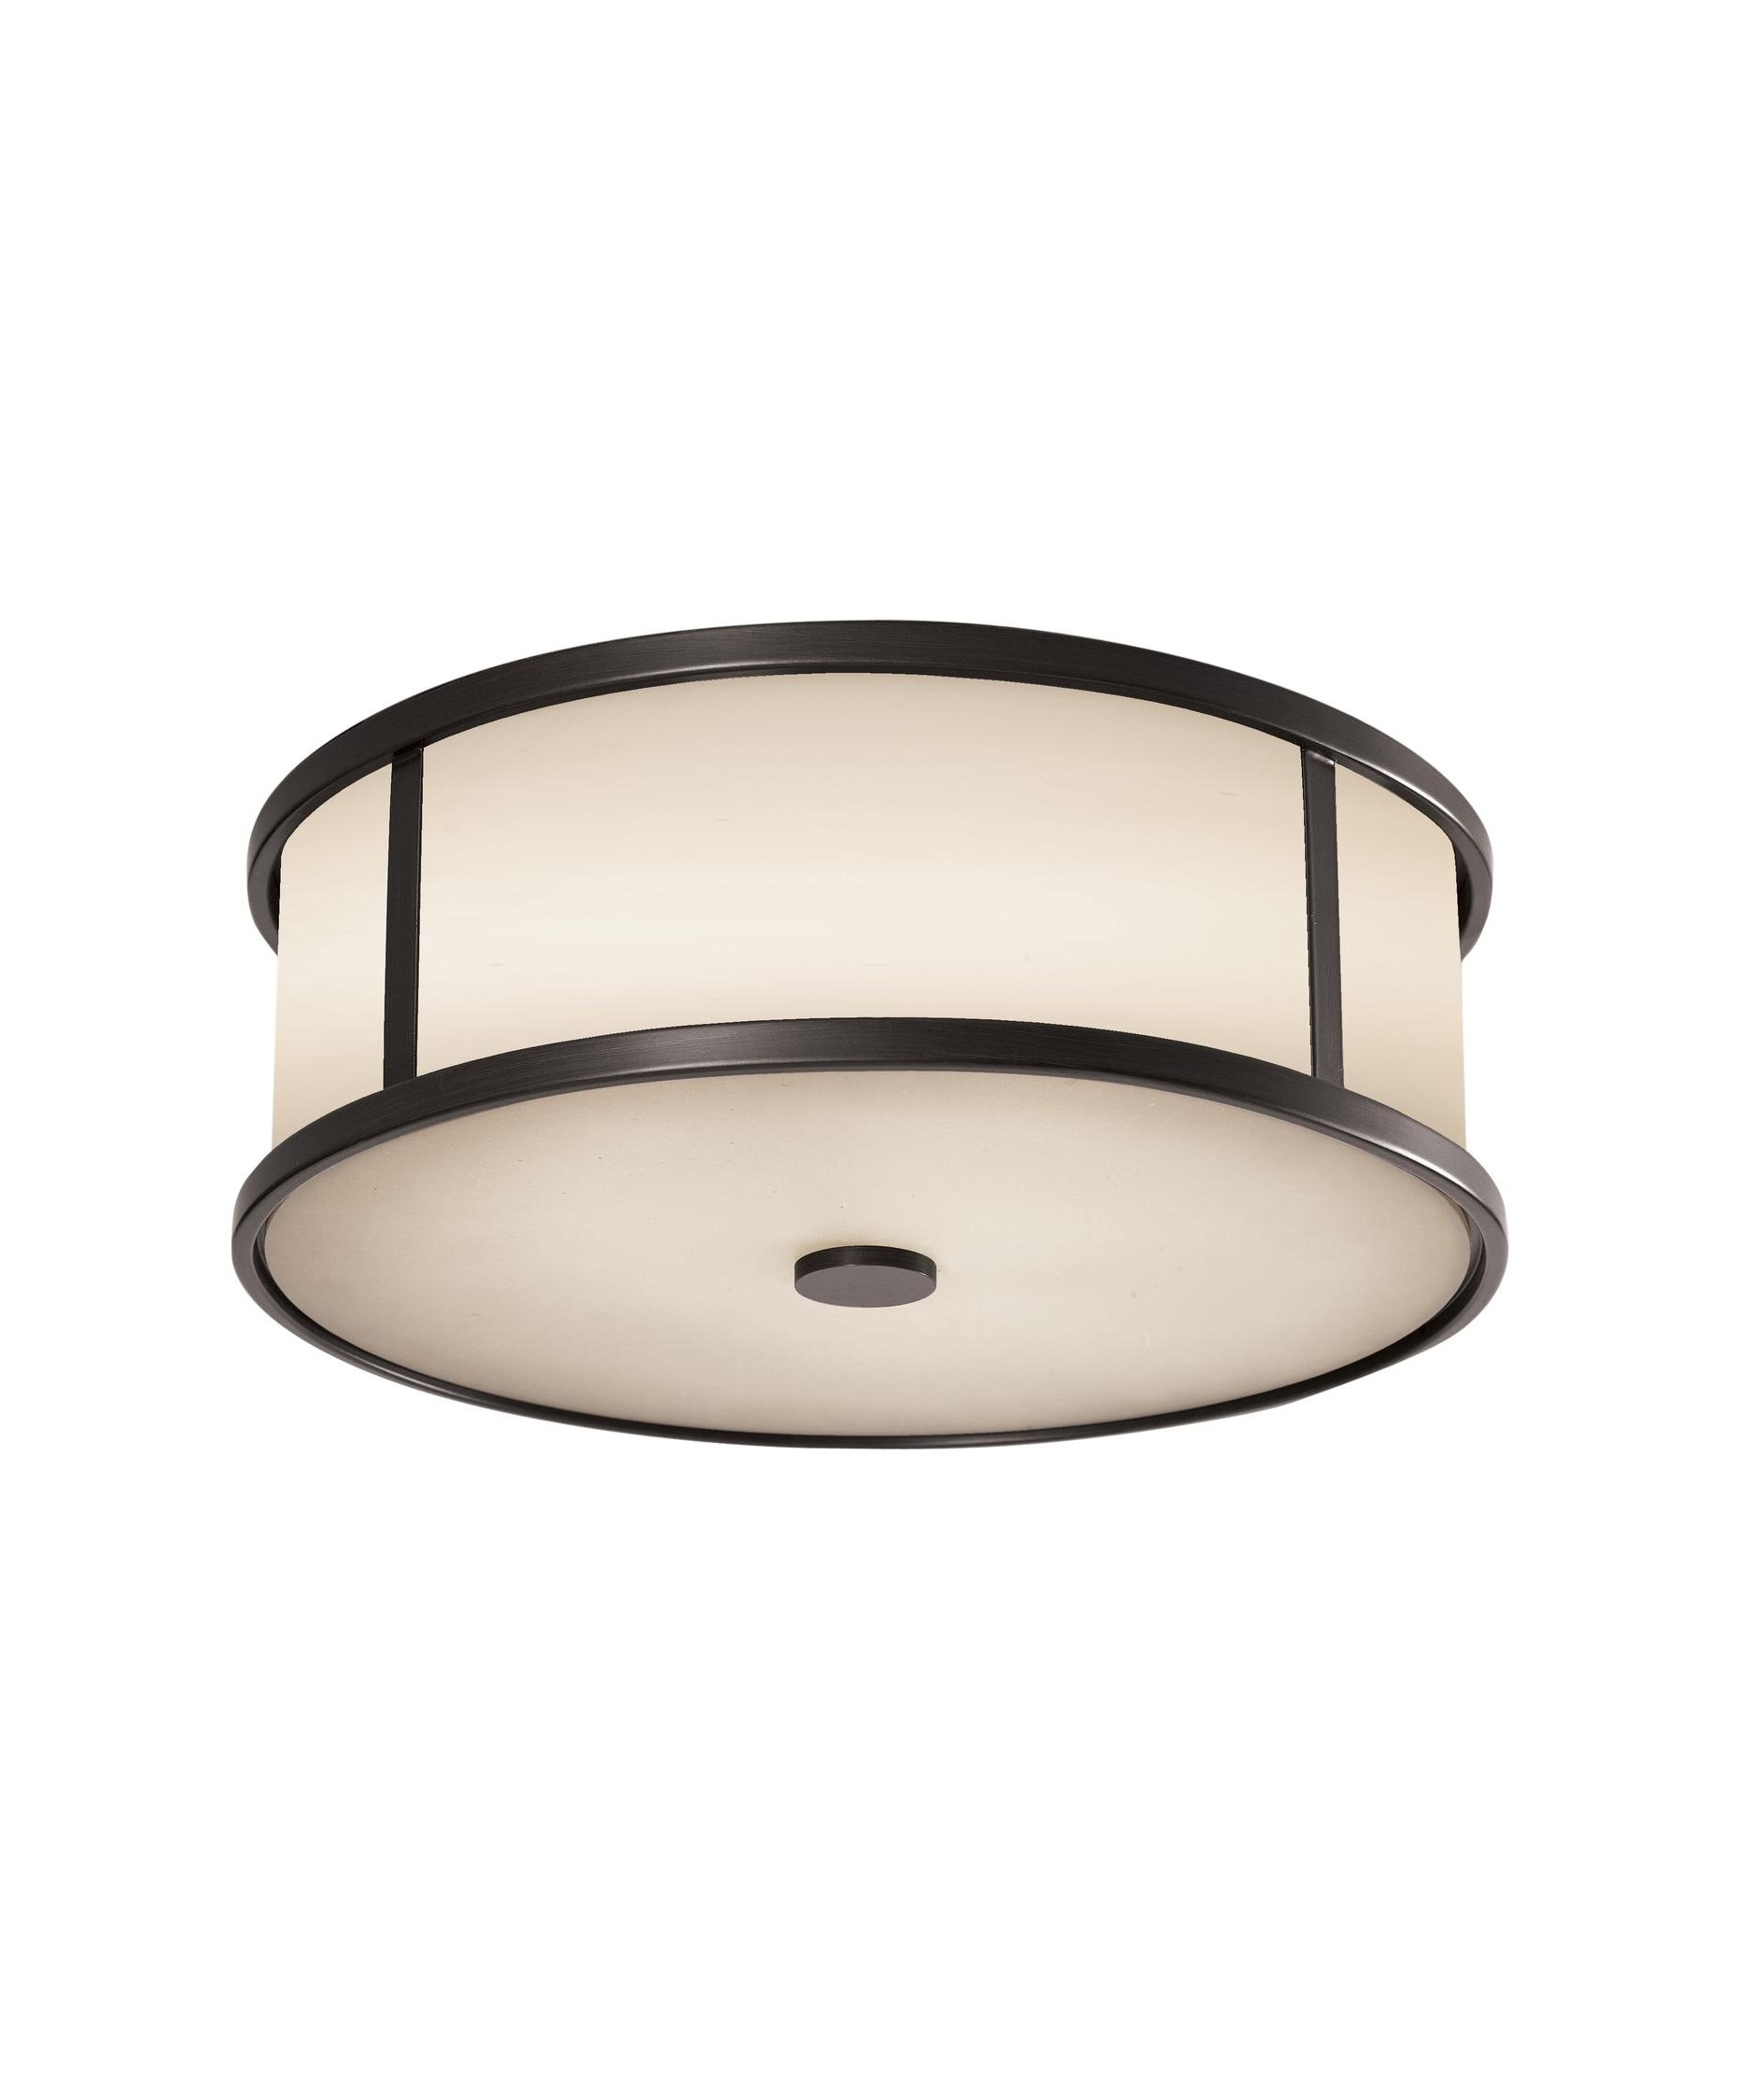 Murray Feiss Ol7613 Dakota 14 Inch Wide 3 Light Outdoor Flush Mount Within Most Up To Date Outdoor Ceiling Mount Led Lights (View 14 of 20)